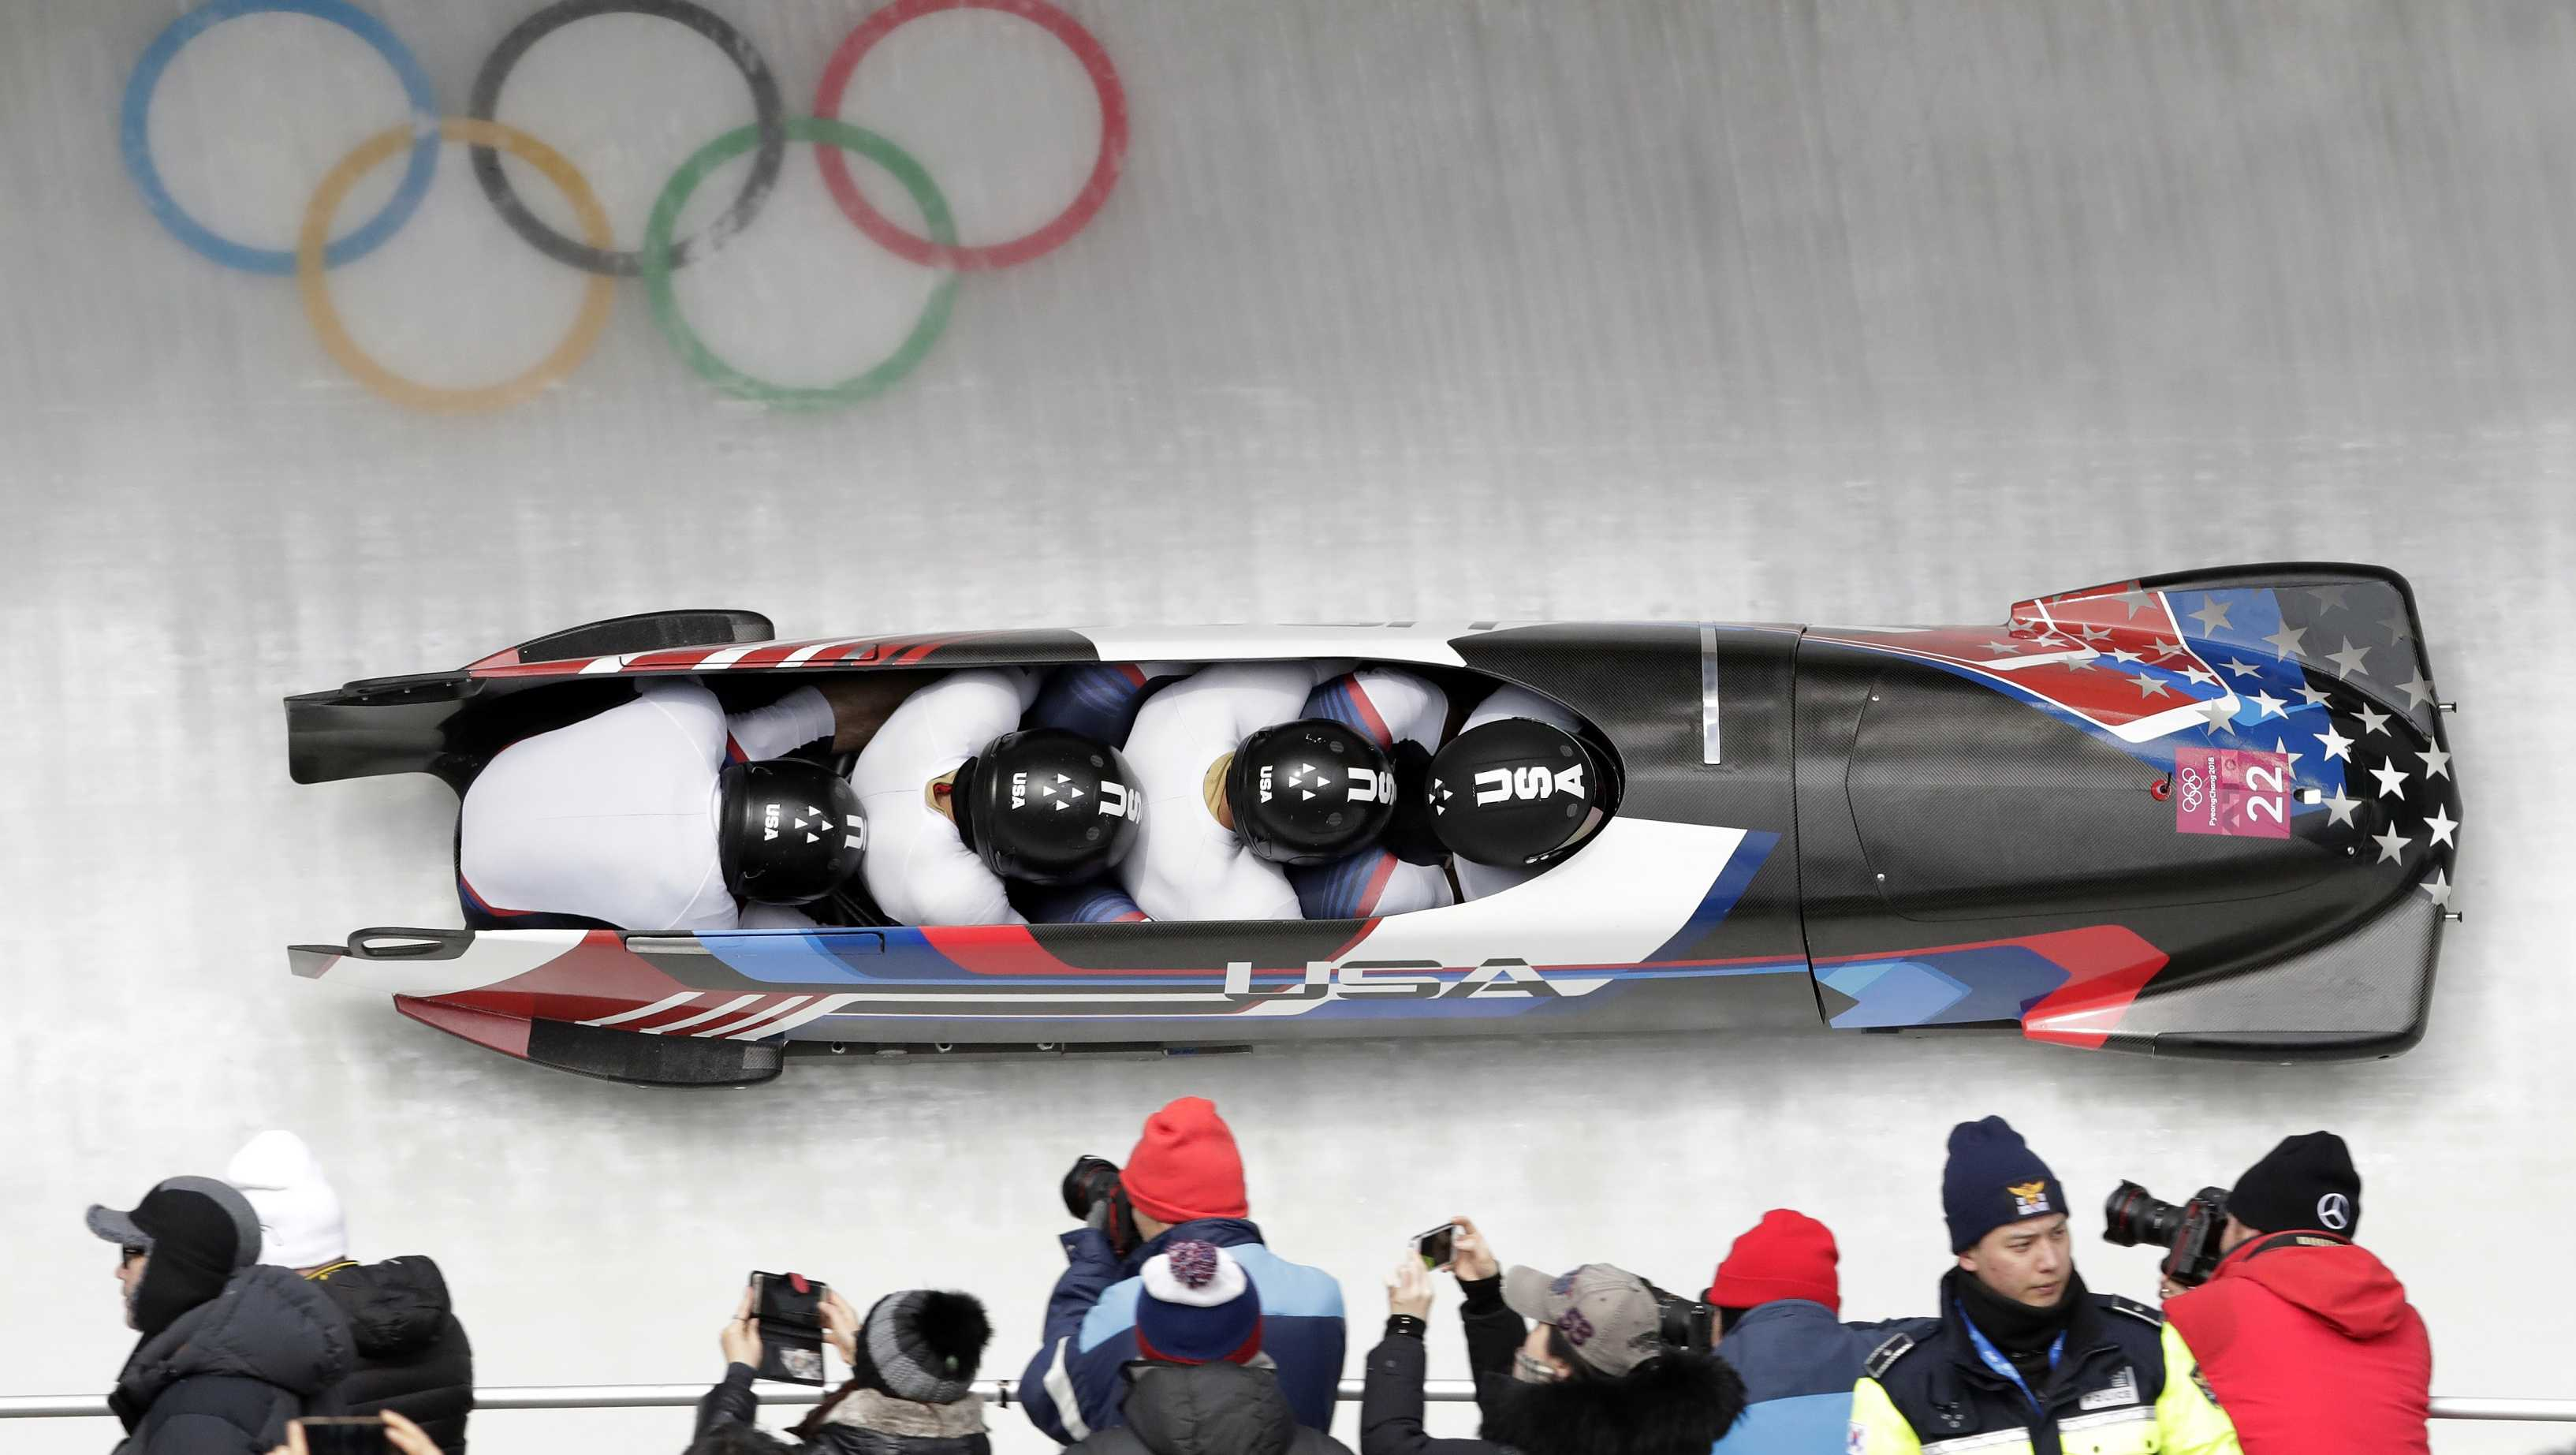 Driver Nick Cunningham, Hakeem Abdul-Saboor, Christopher Kinney, Samuel Michner of the United States take a curve in the second heat of the four-man bobsled competition at the 2018 Winter Olympics in Pyeongchang, South Korea, Saturday, Feb. 24, 2018. )